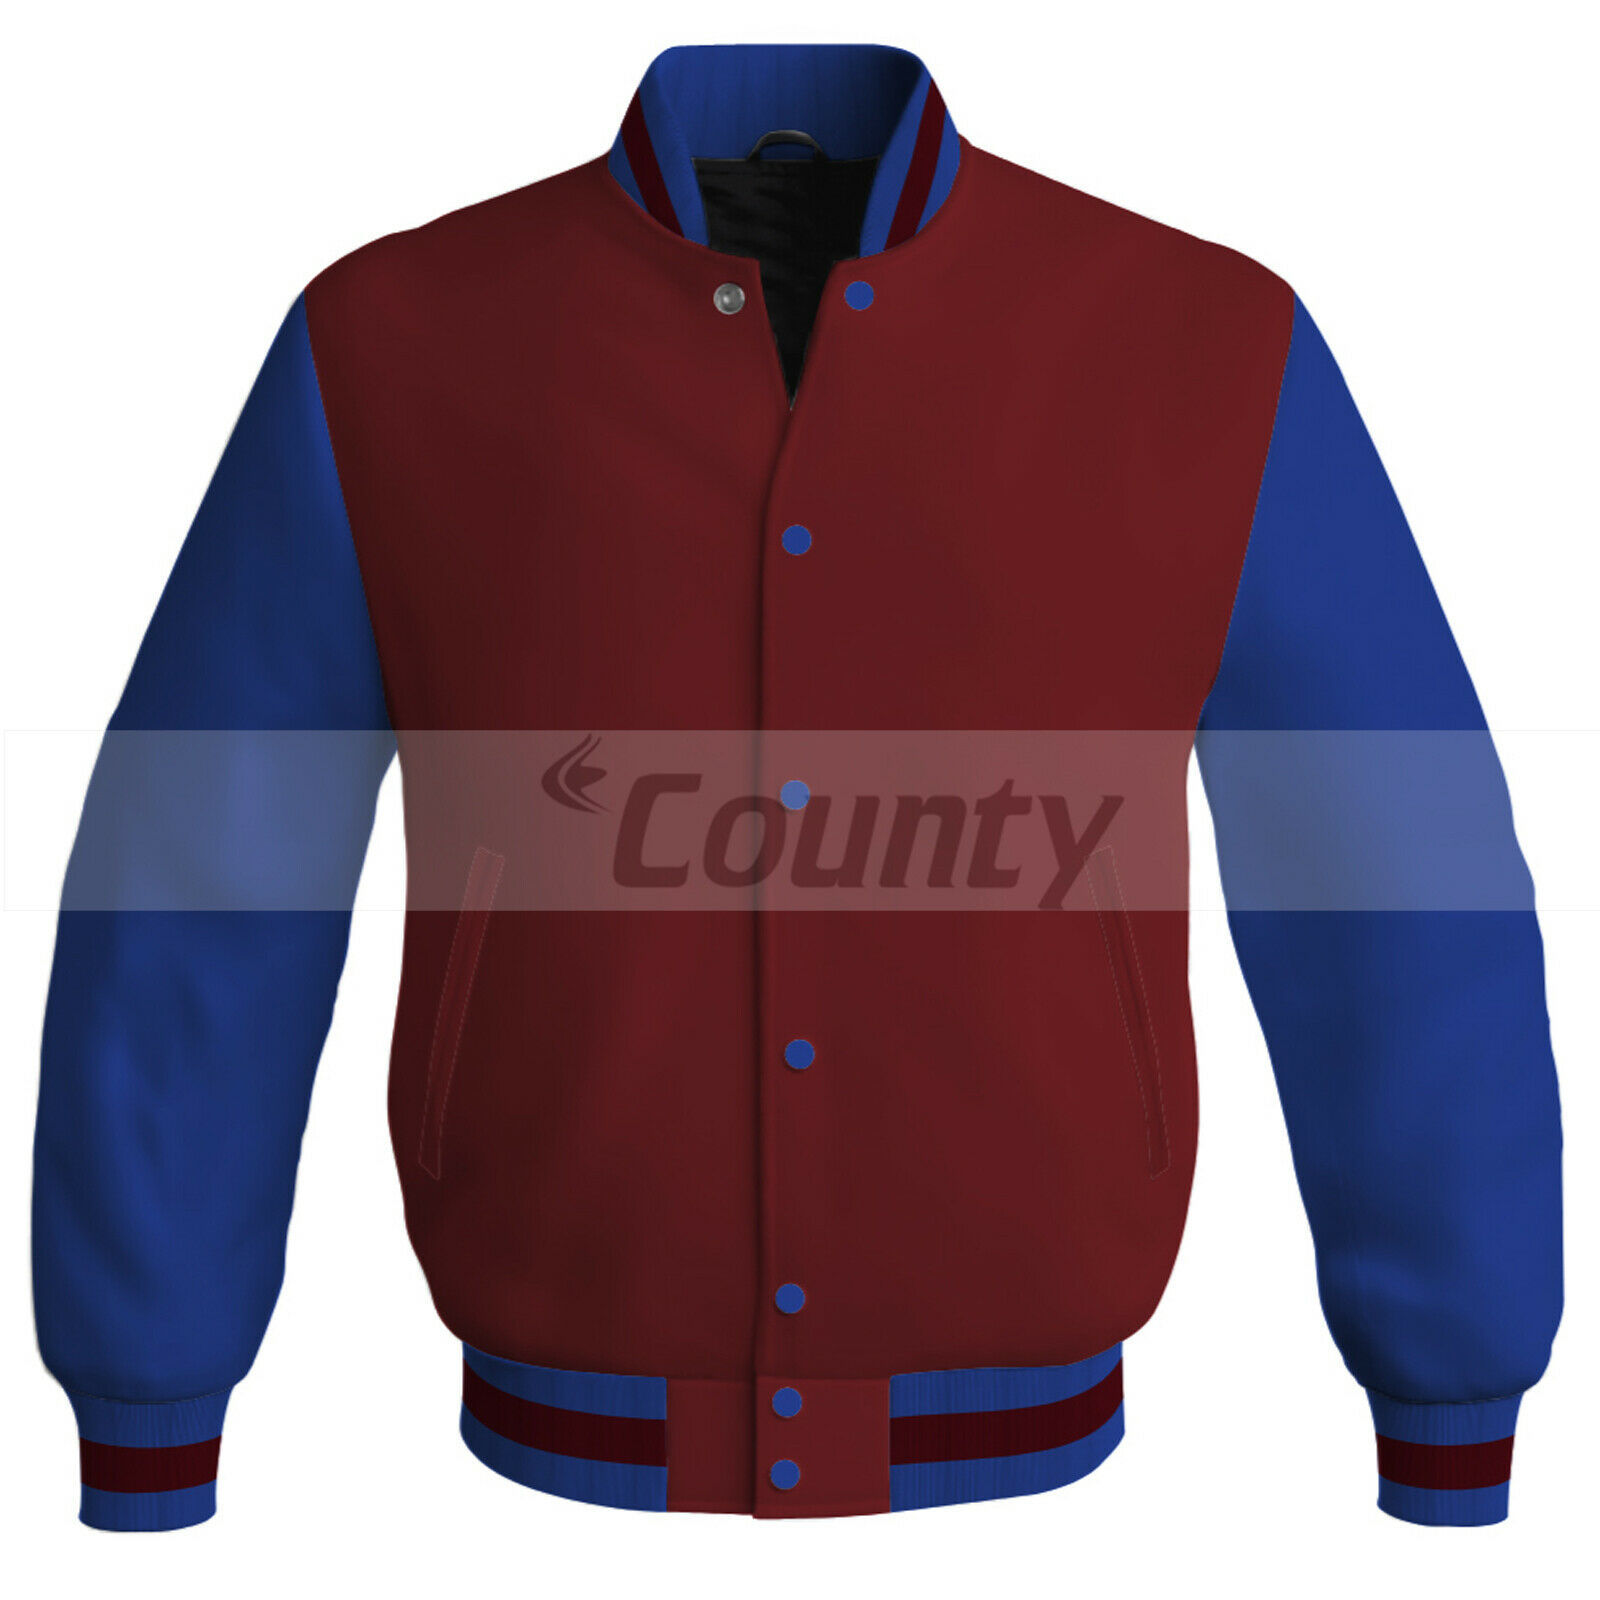 Primary image for Letterman Super Baseball College Bomber Jacket Sports Maroon Blue Satin